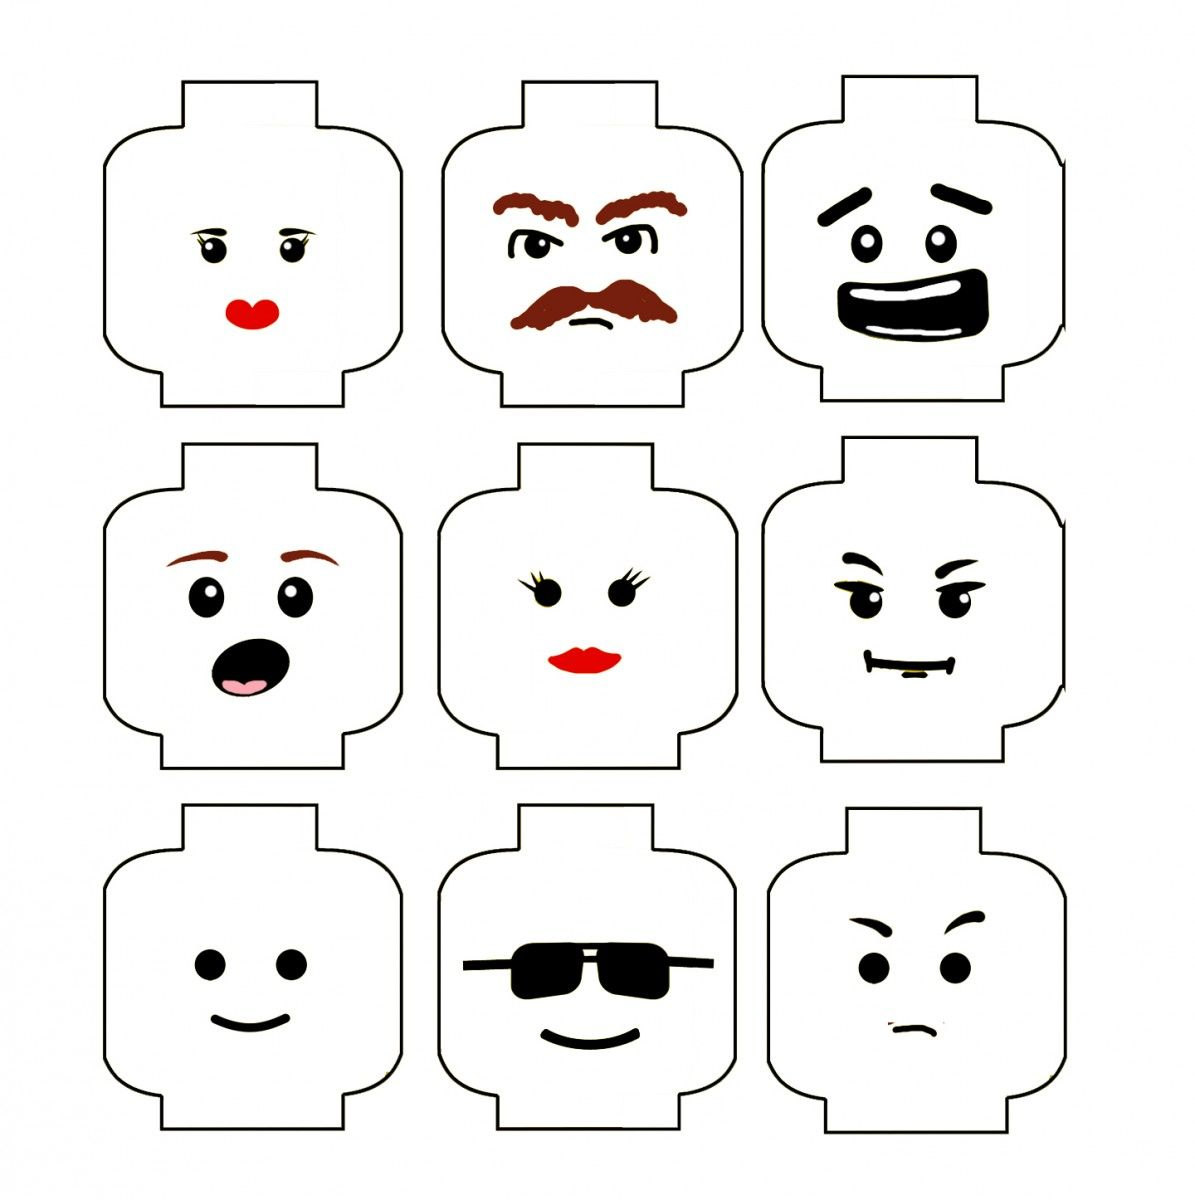 image relating to Lego Faces Printable titled Low-cost Basic Lego Birthday Get together I which include this Lego thoughts